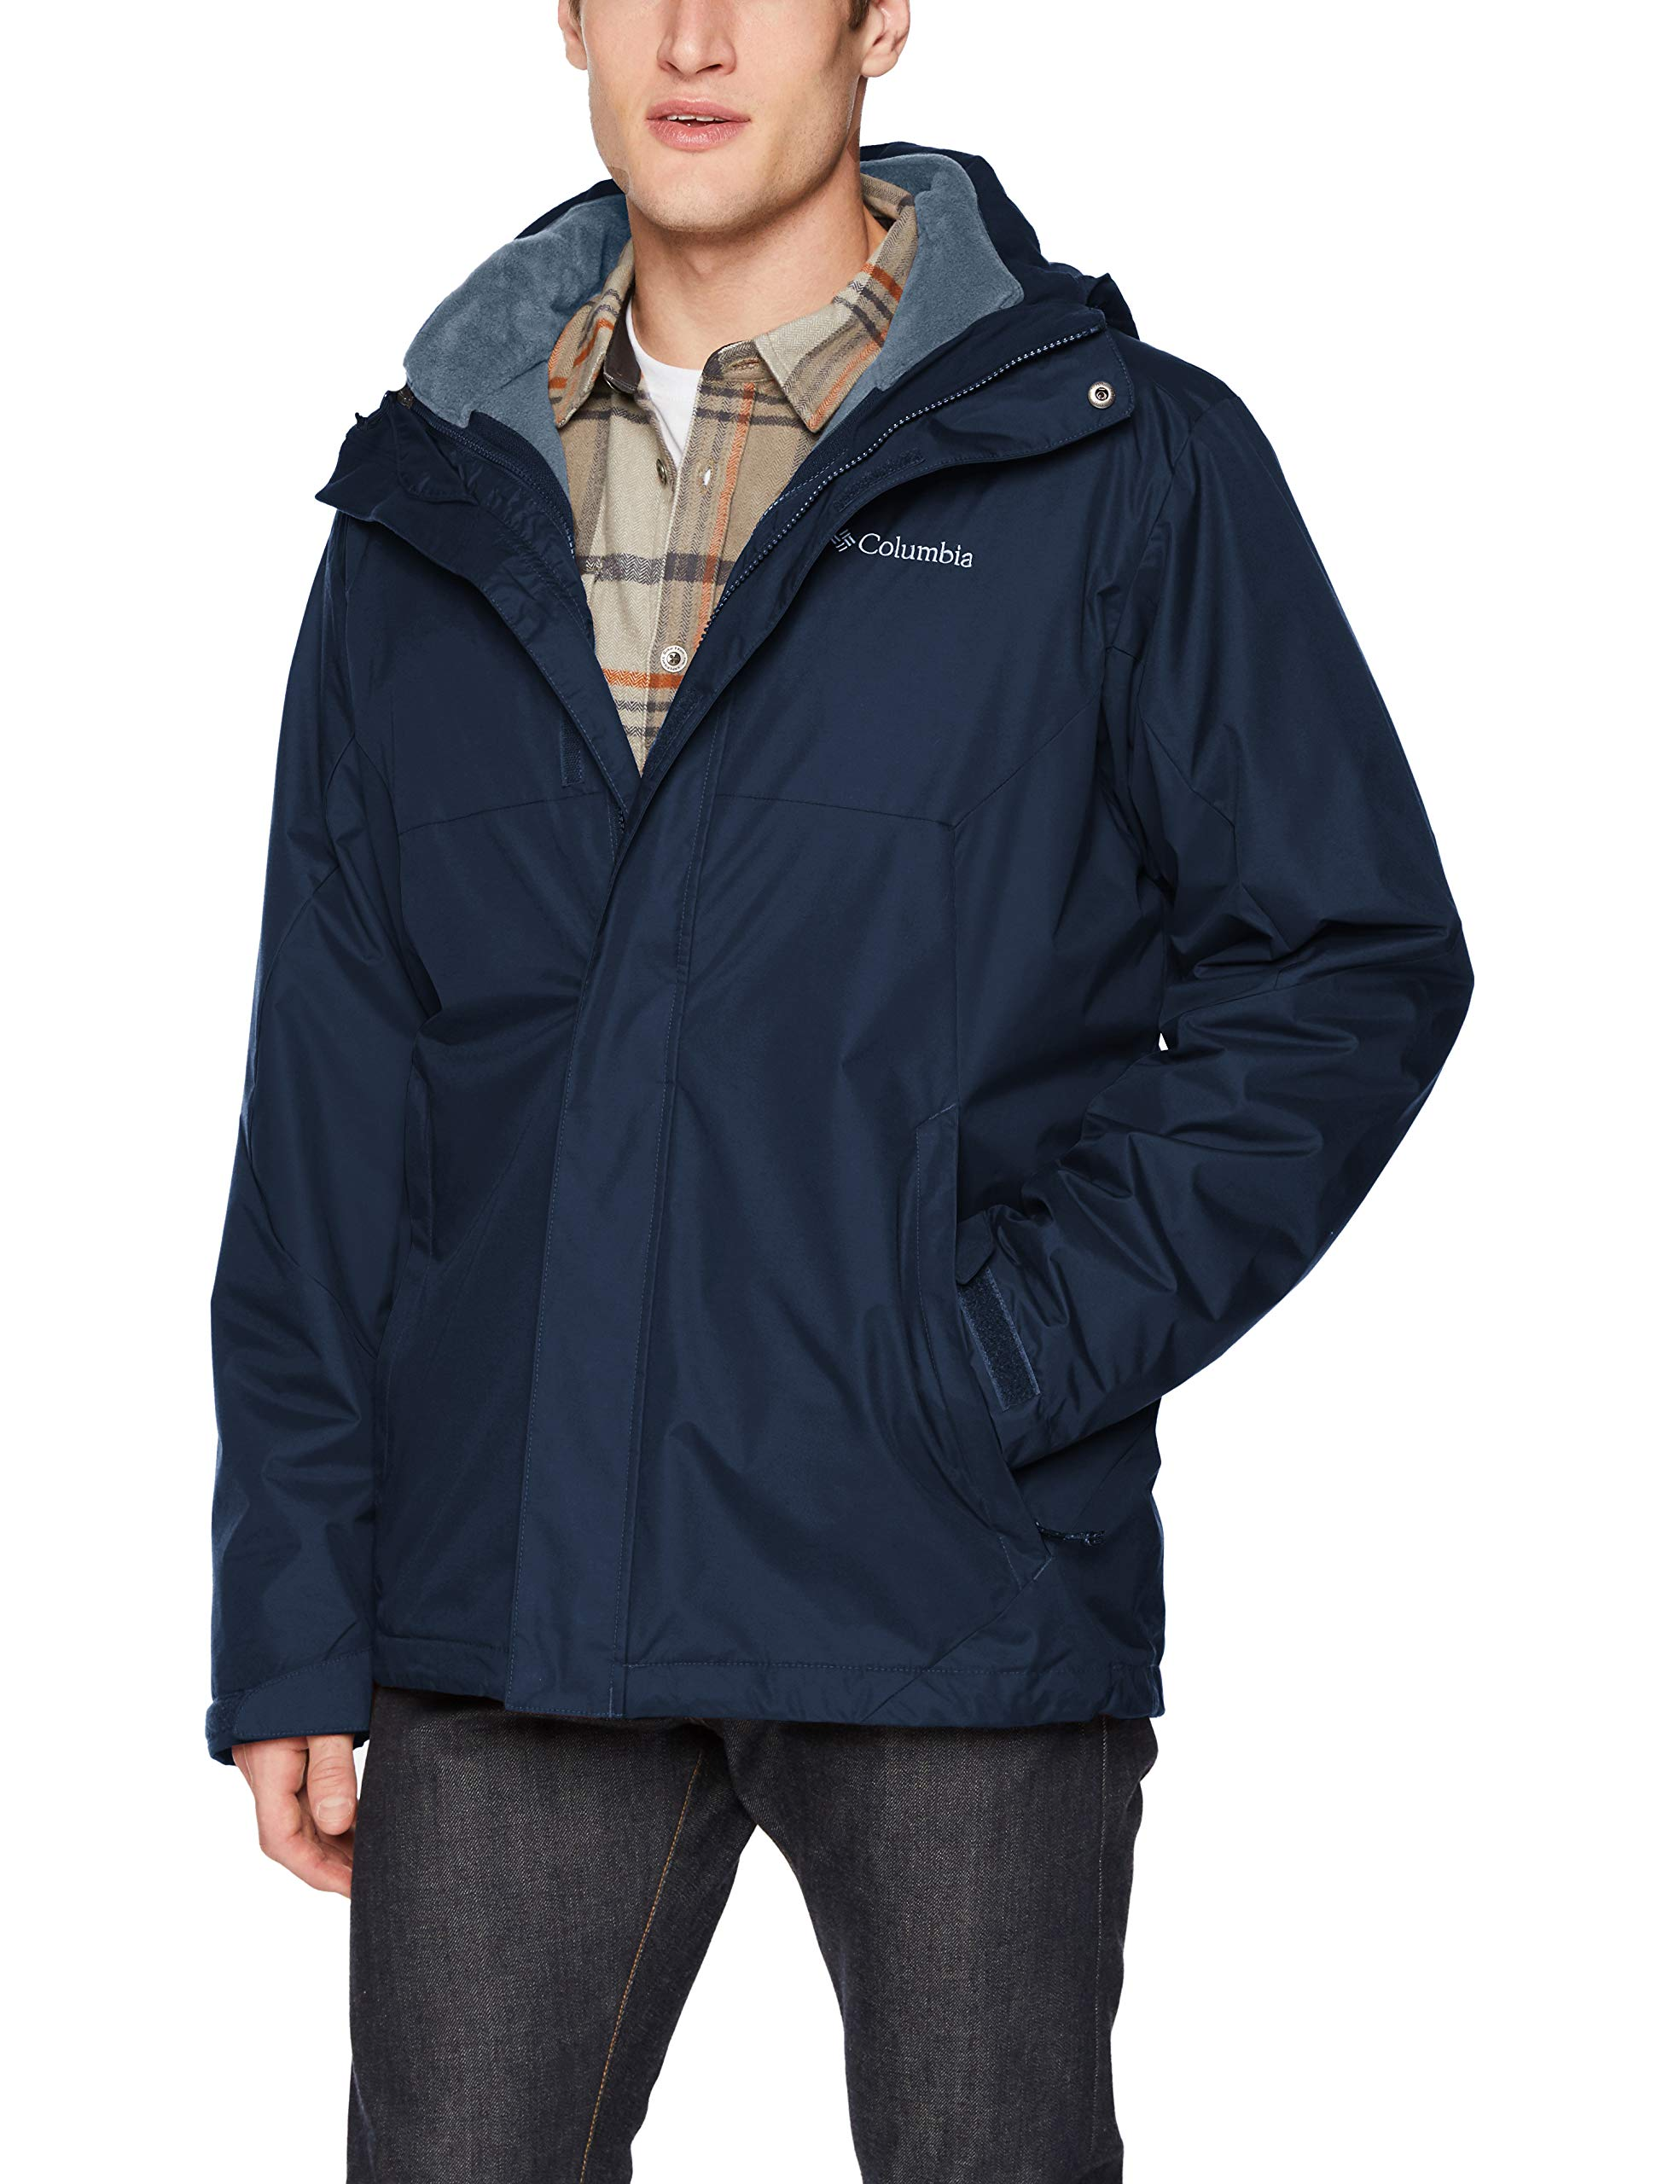 Columbia Men's Eager Air Interchange Jacket, Collegiate Navy, Small by Columbia